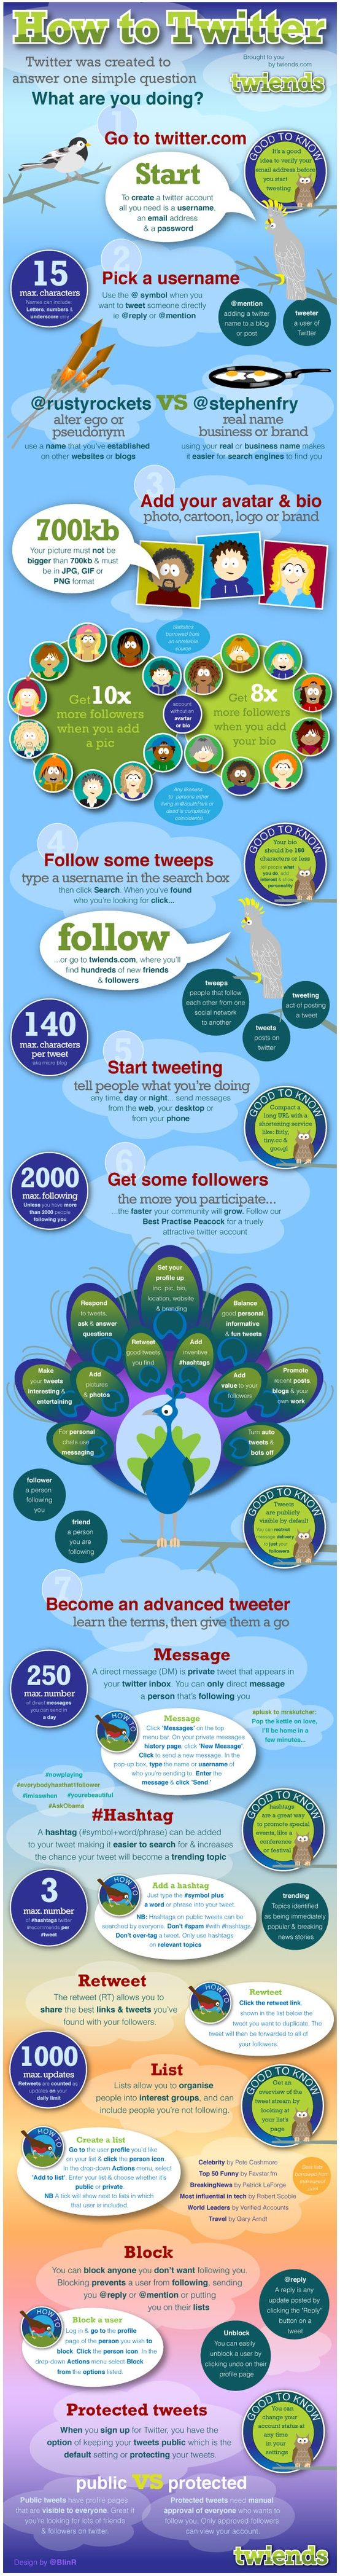 How to use Twitter in 60 Seconds ~ via Educational Technology and Mobile Learning #infographic